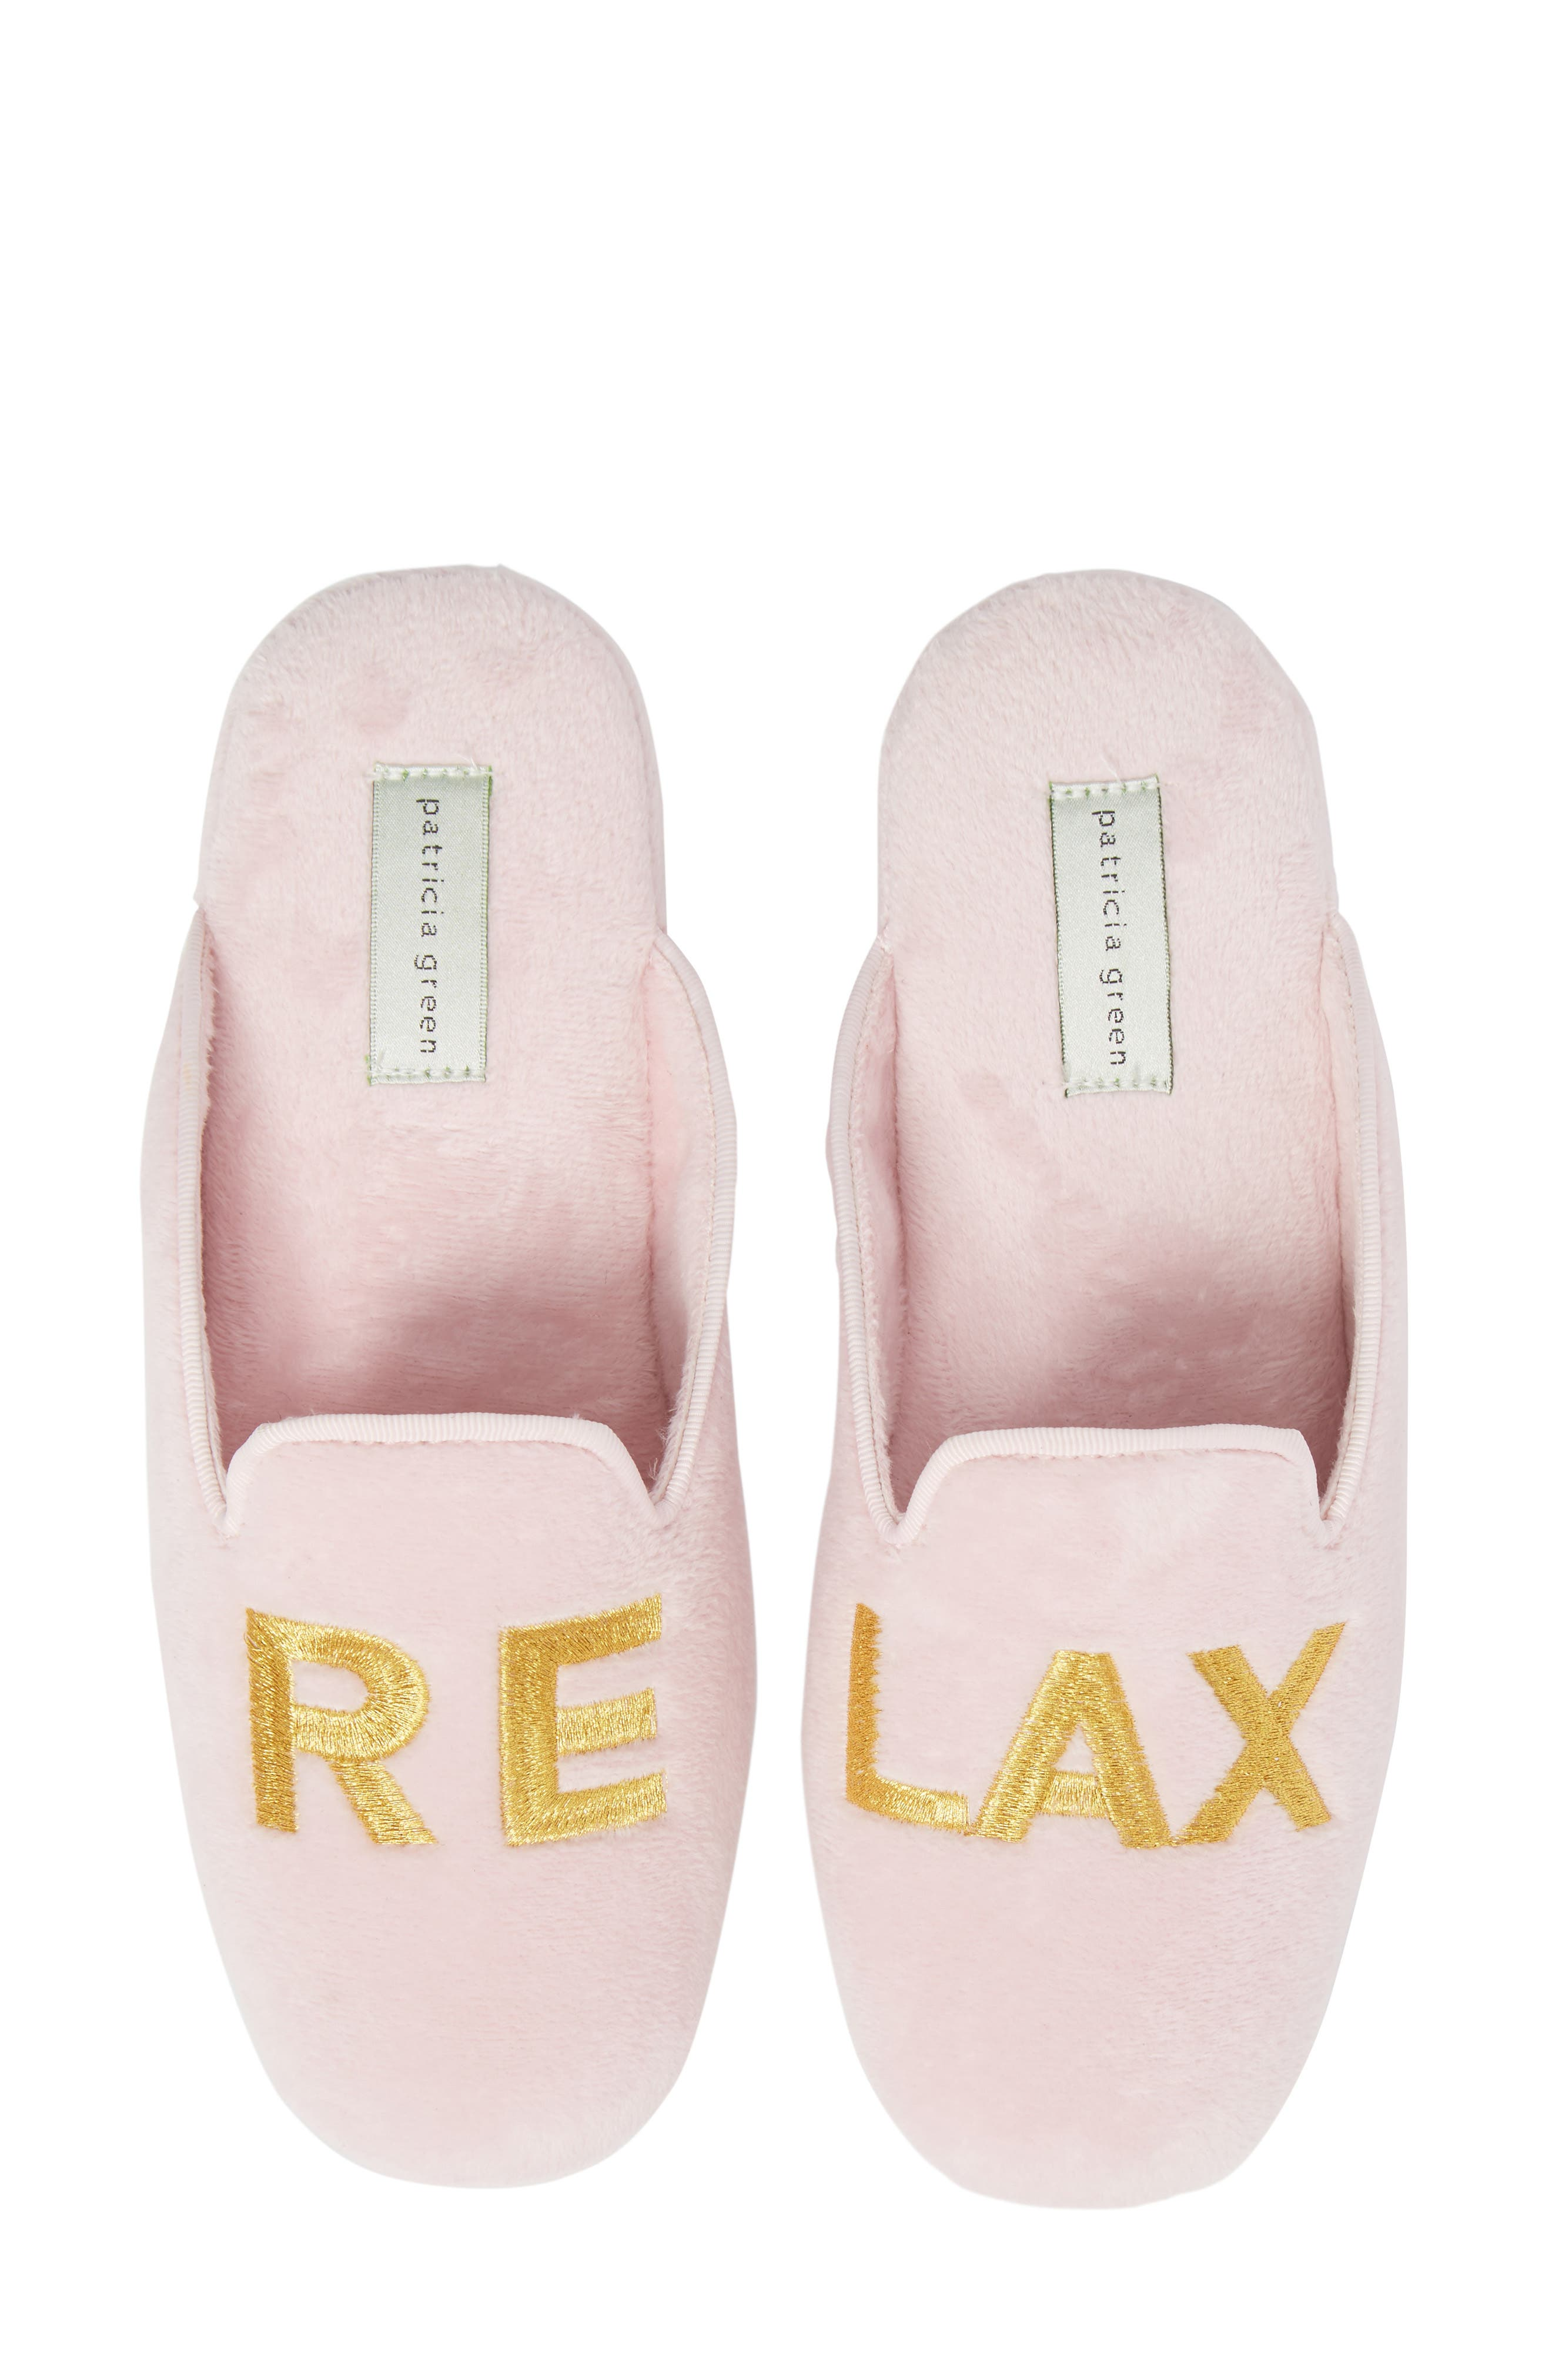 Relax Embroidered Mule Slipper,                             Main thumbnail 1, color,                             PINK FABRIC